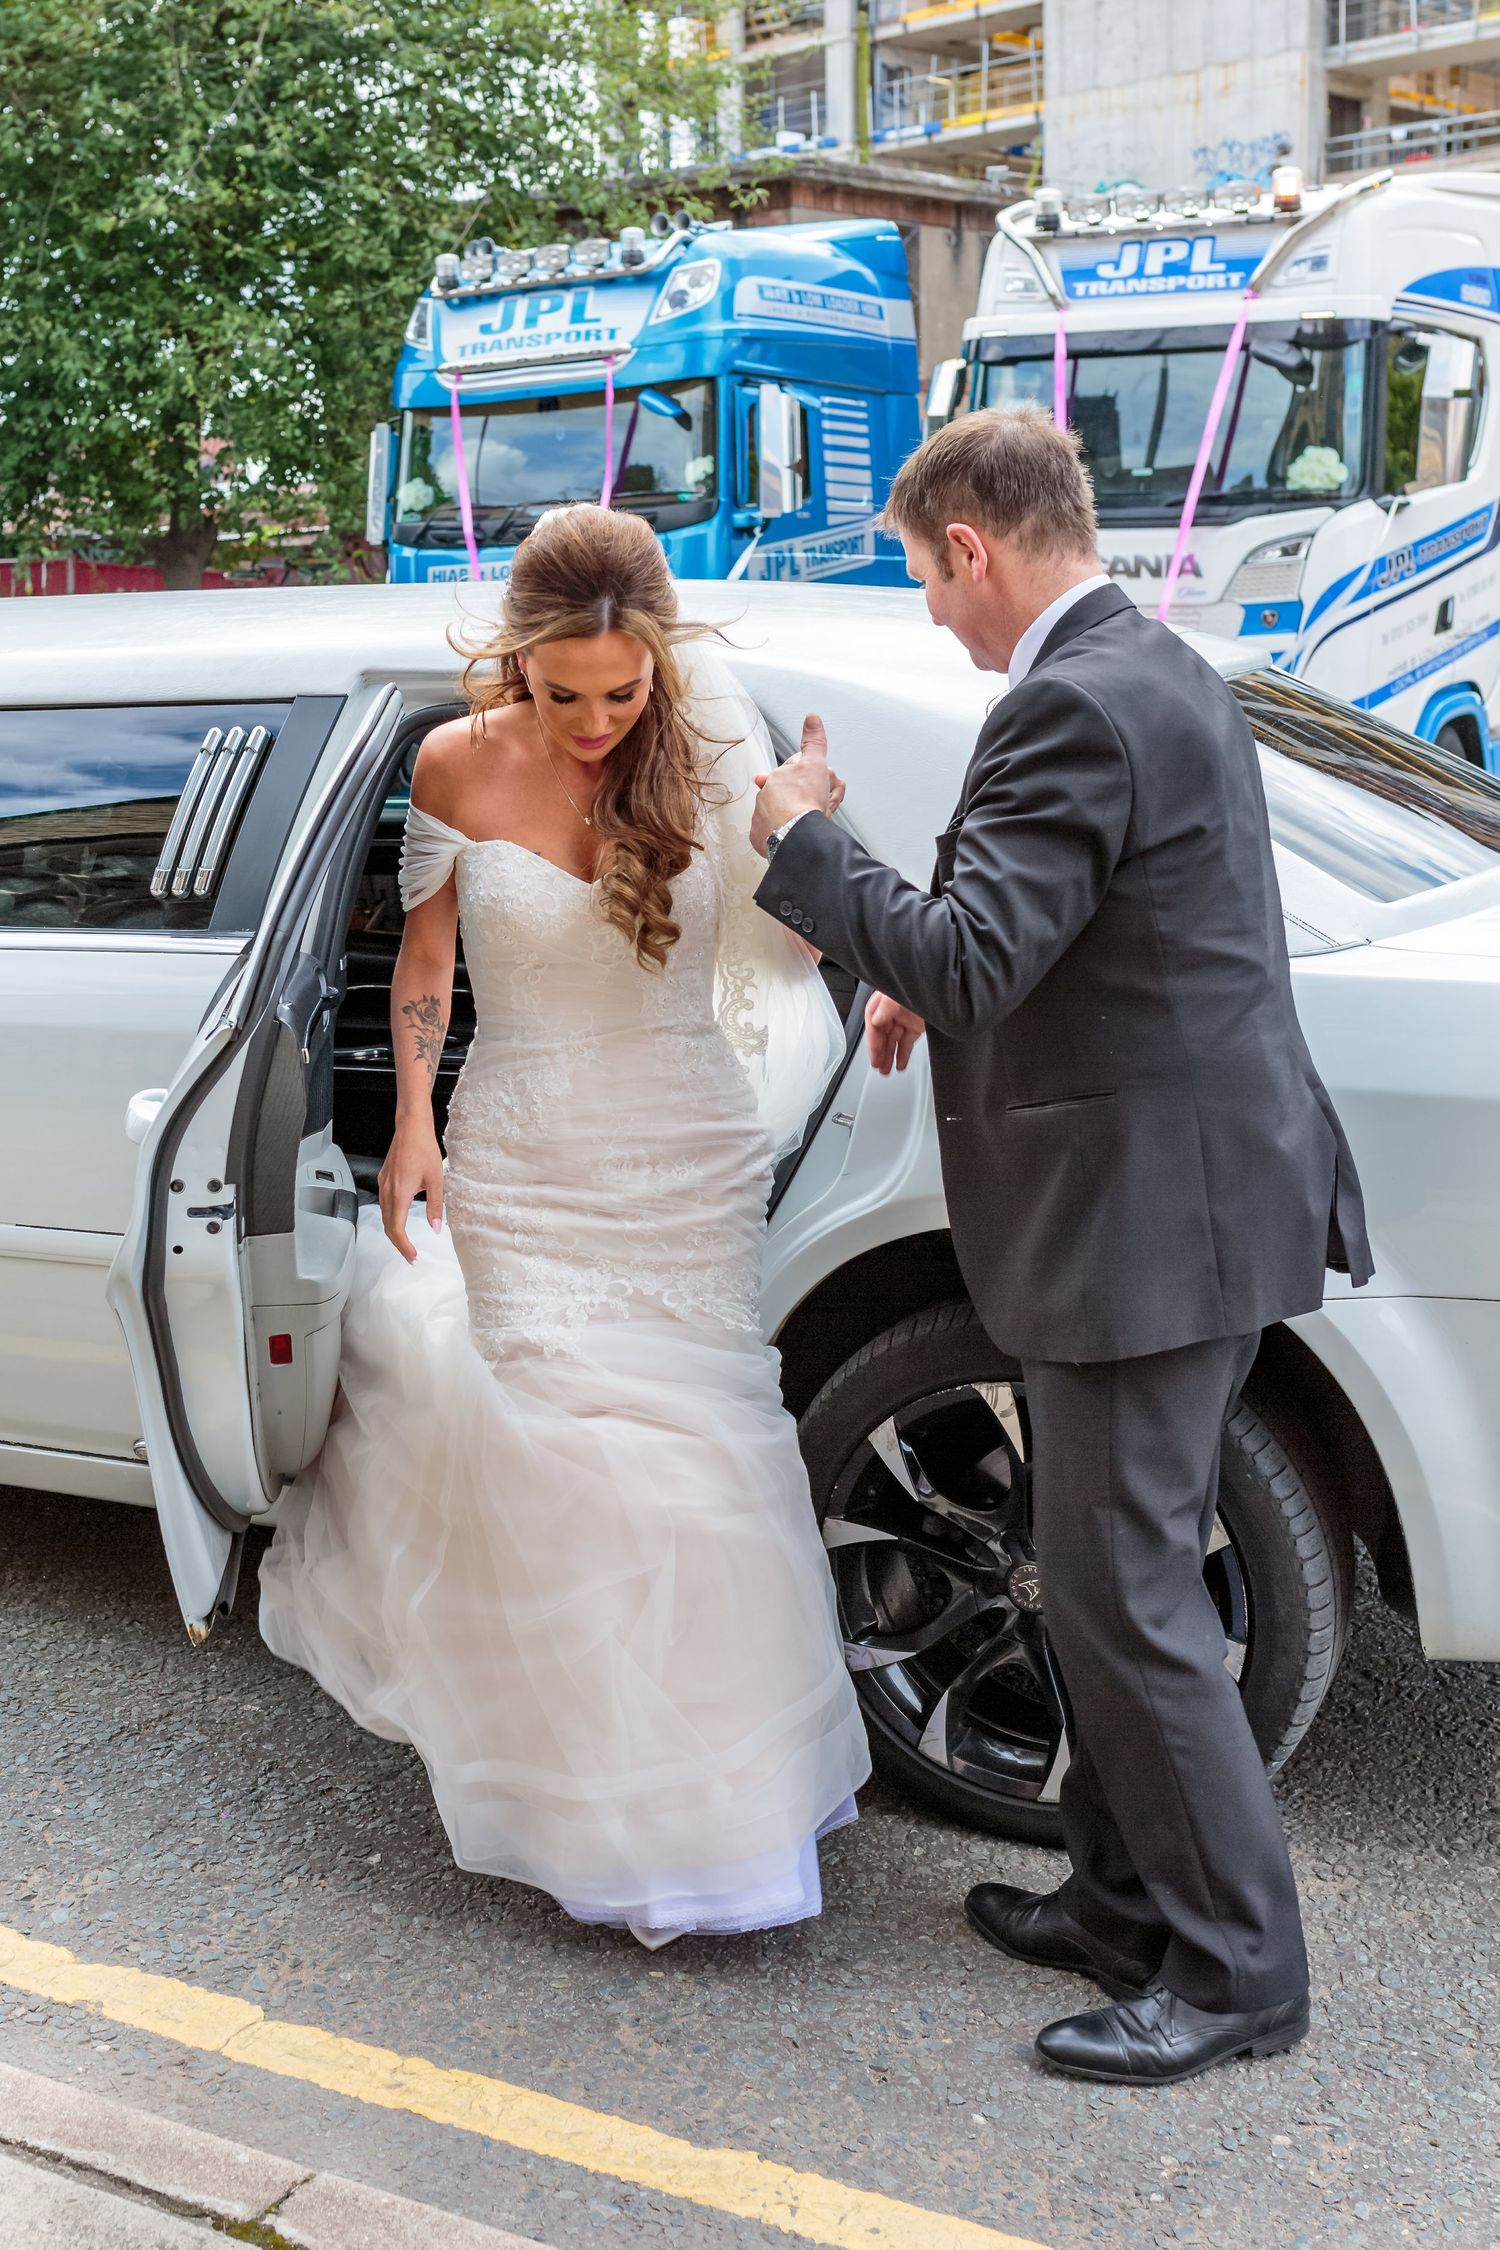 bride helped out of the stretch limo by the chauffeur